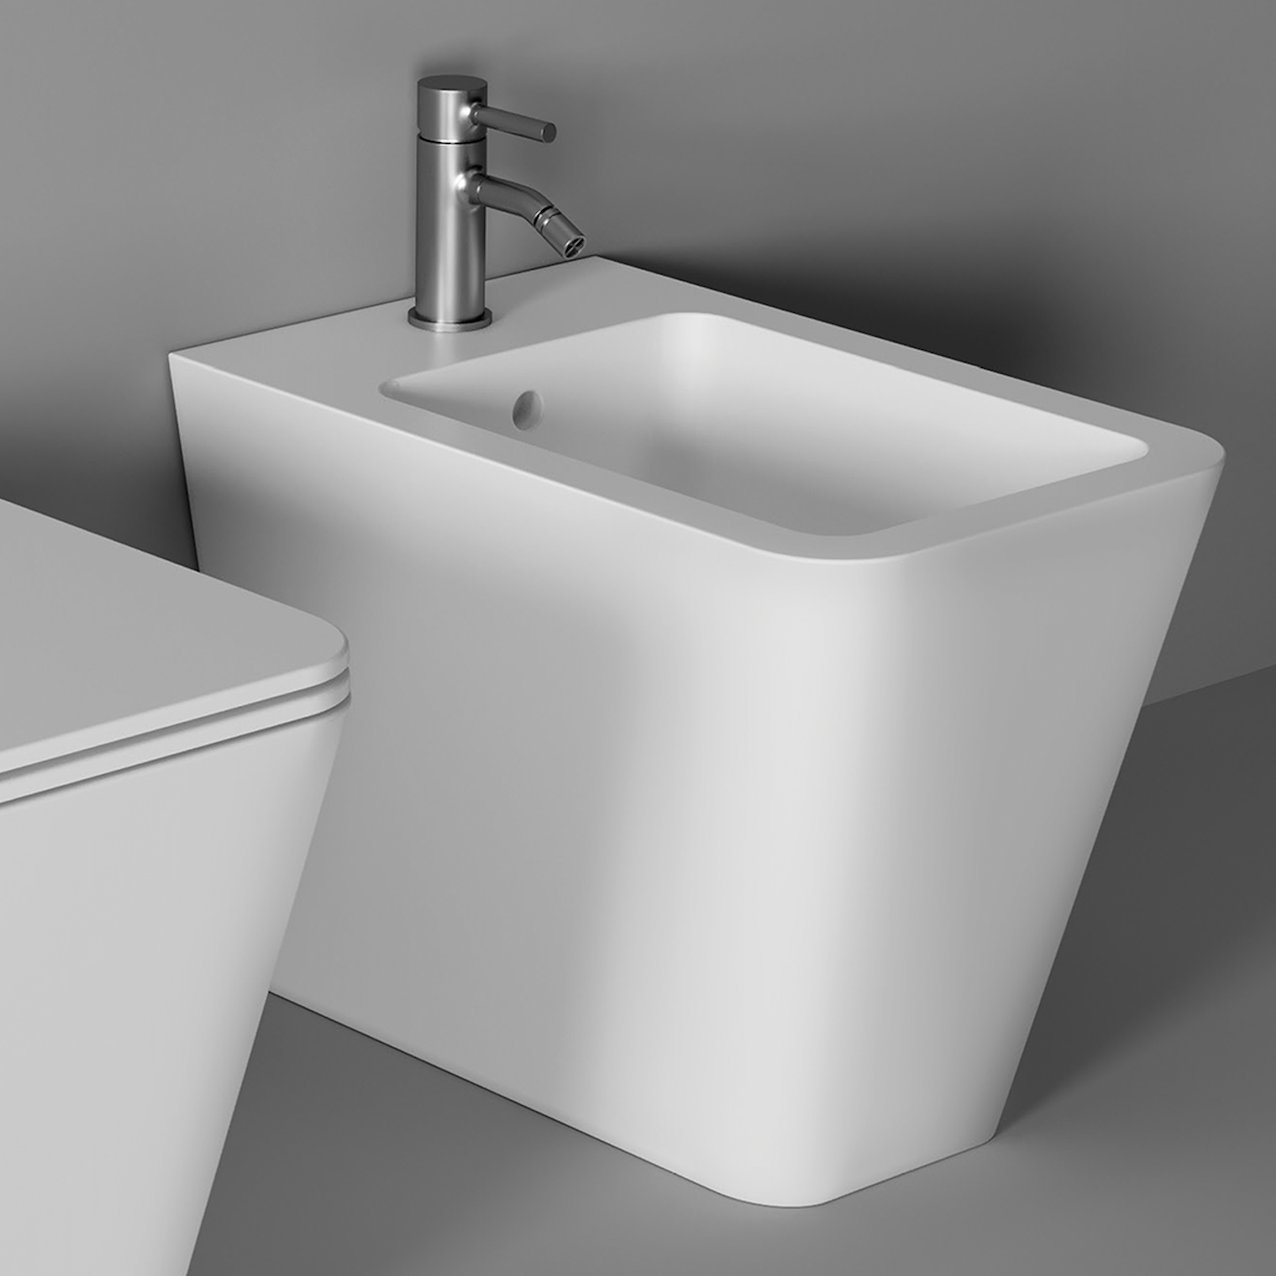 Bidet Hide Square back to wall